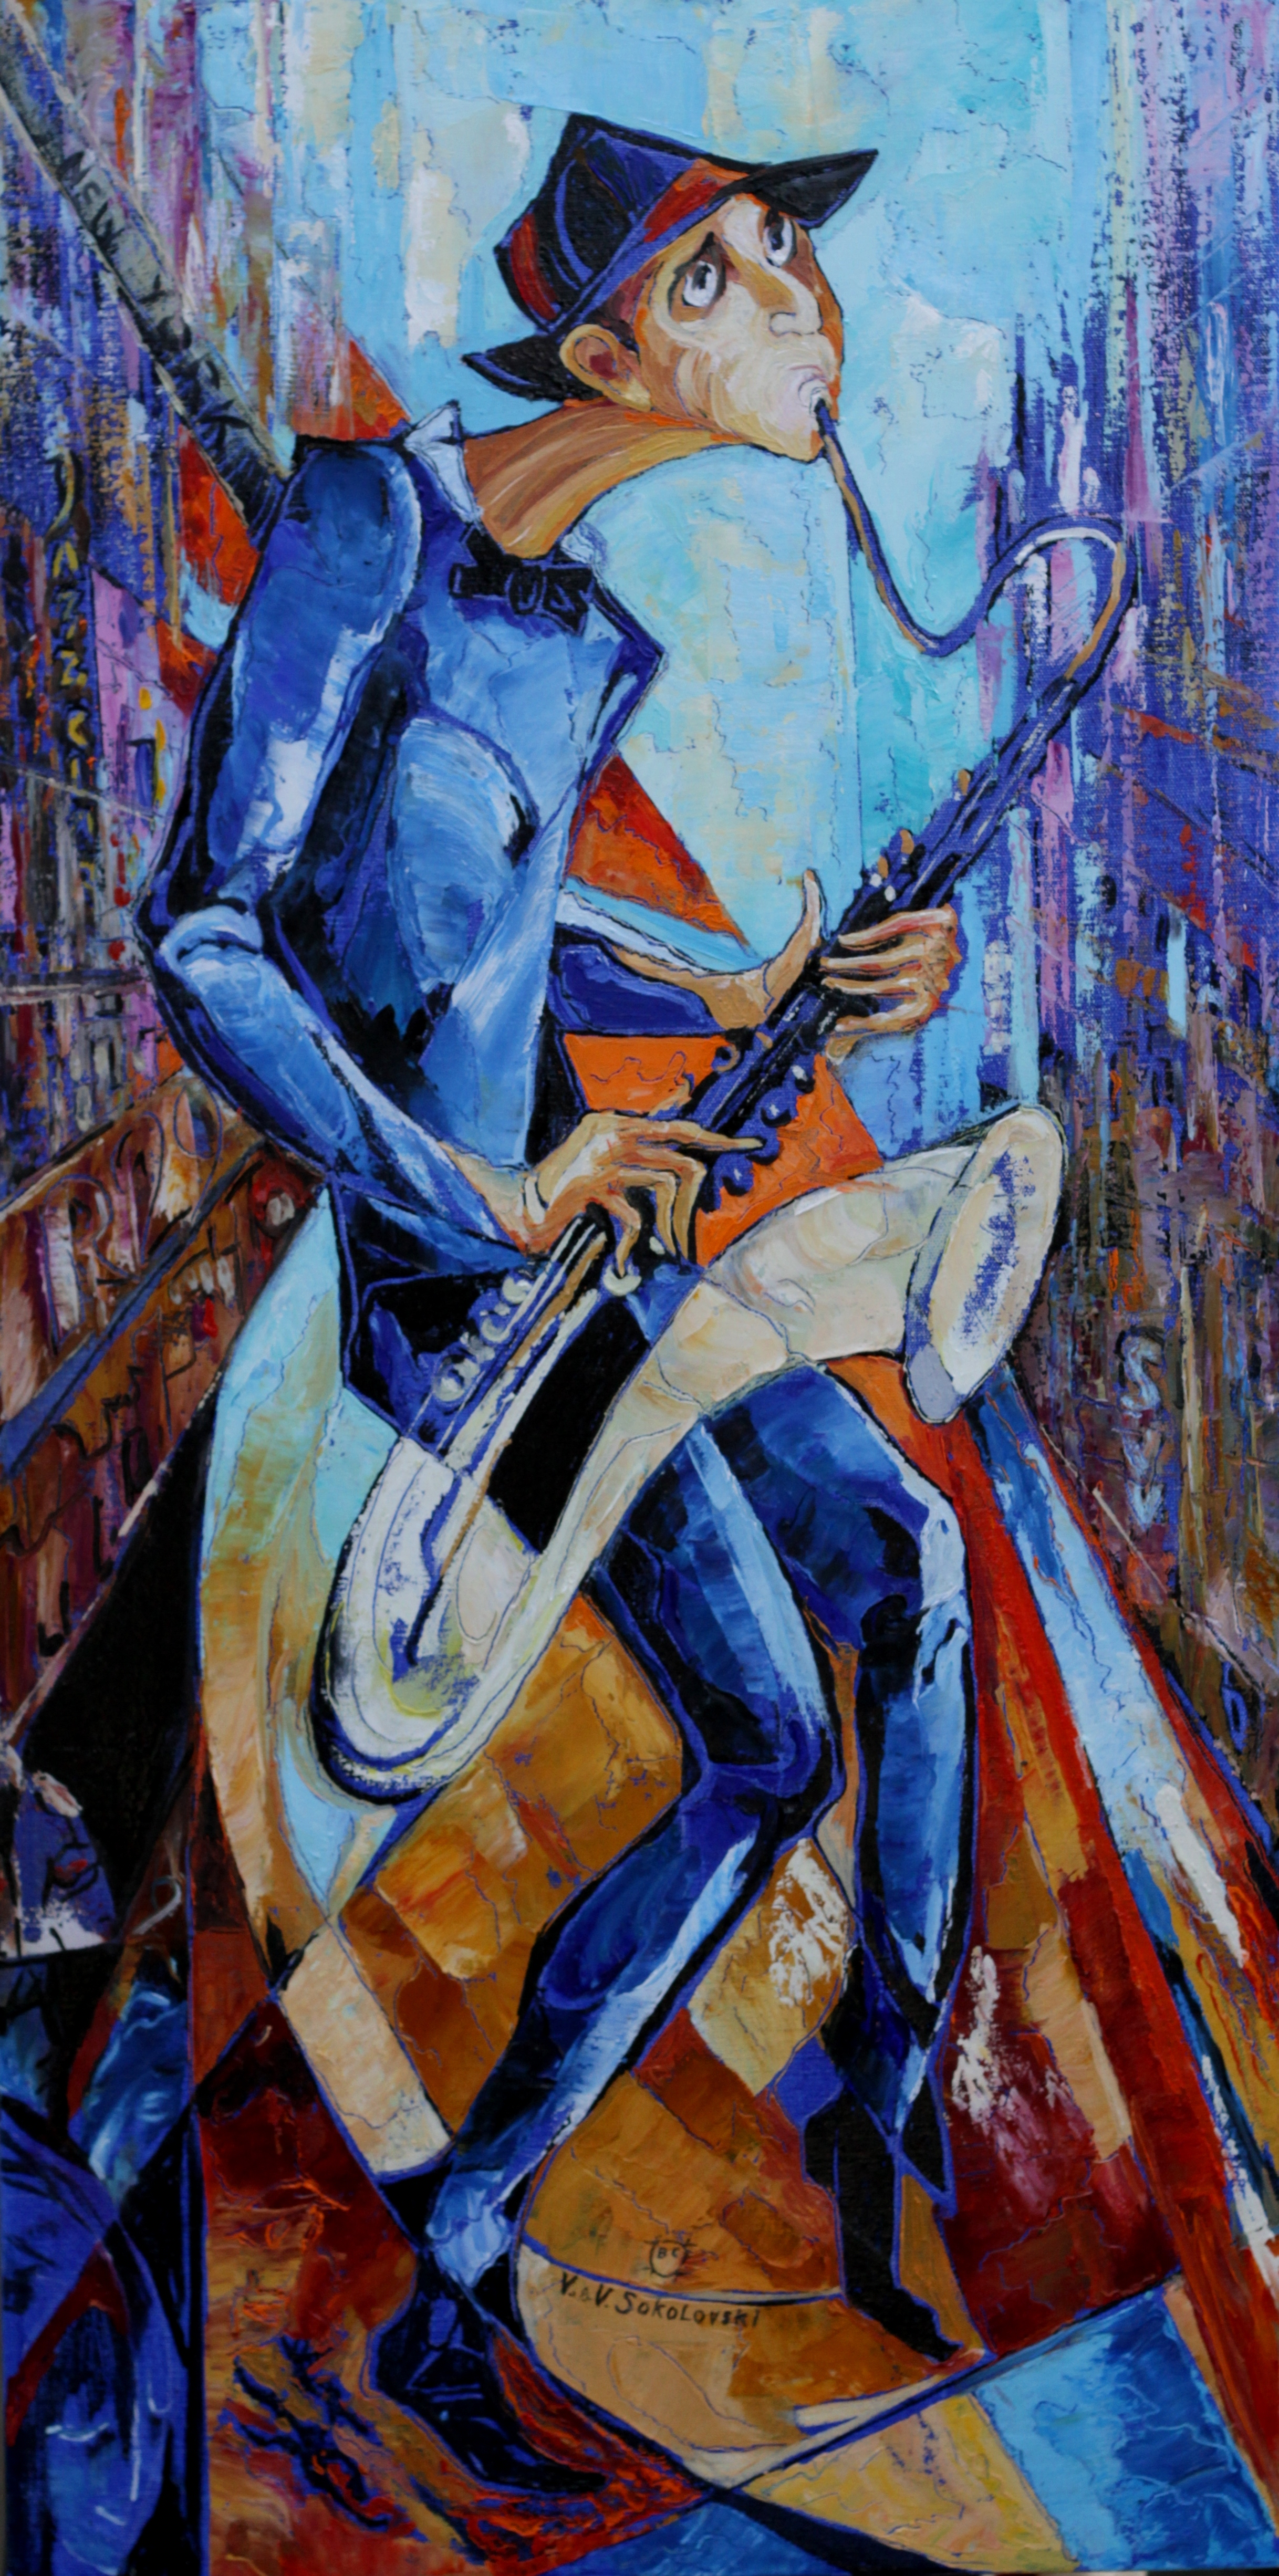 Stone Wall Mural Street Musician Series 2 Saxophonist Oil On Canvas 36